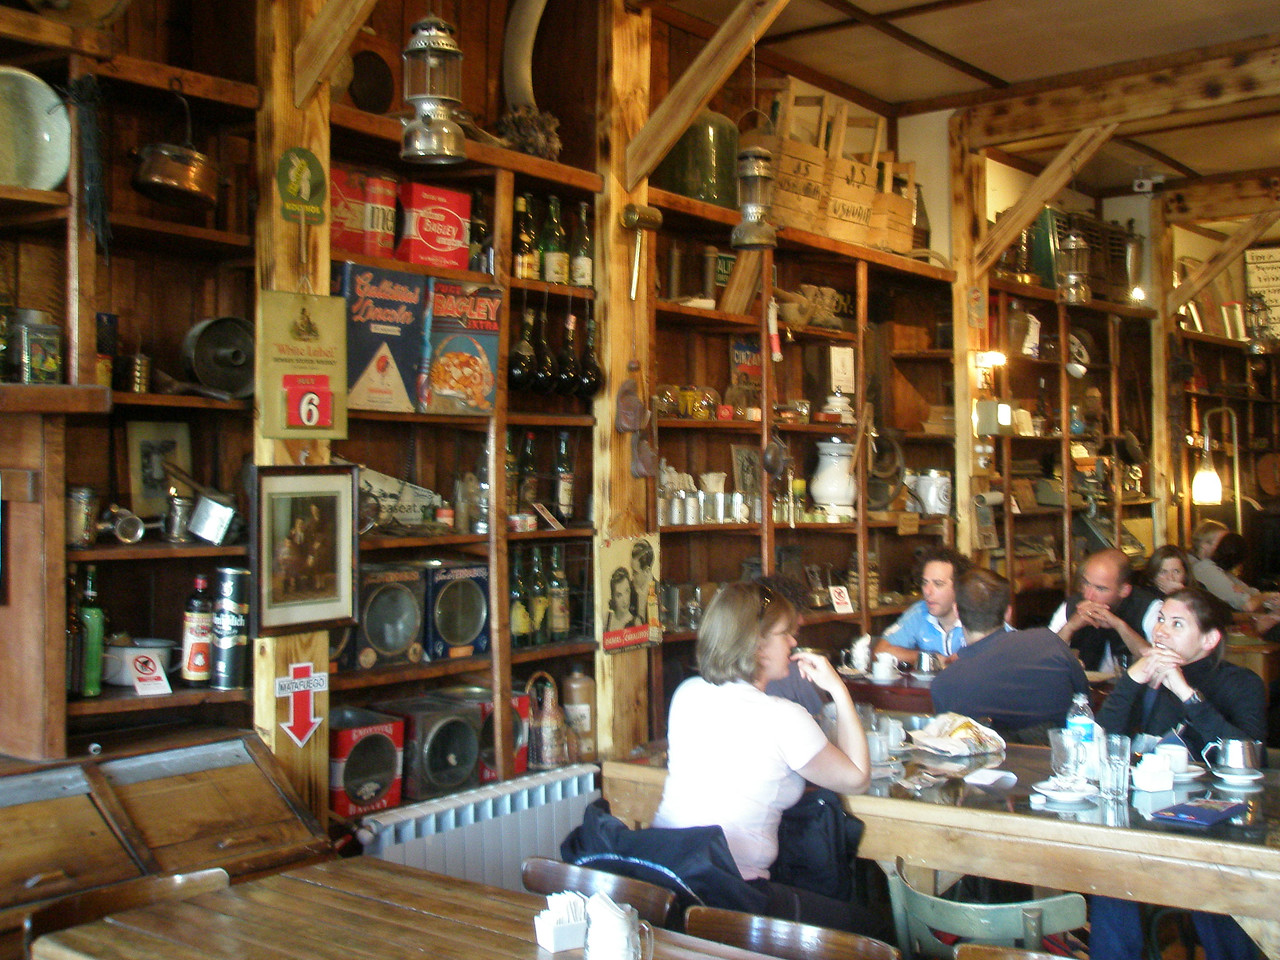 Very cool old general store/coffee shop/museum